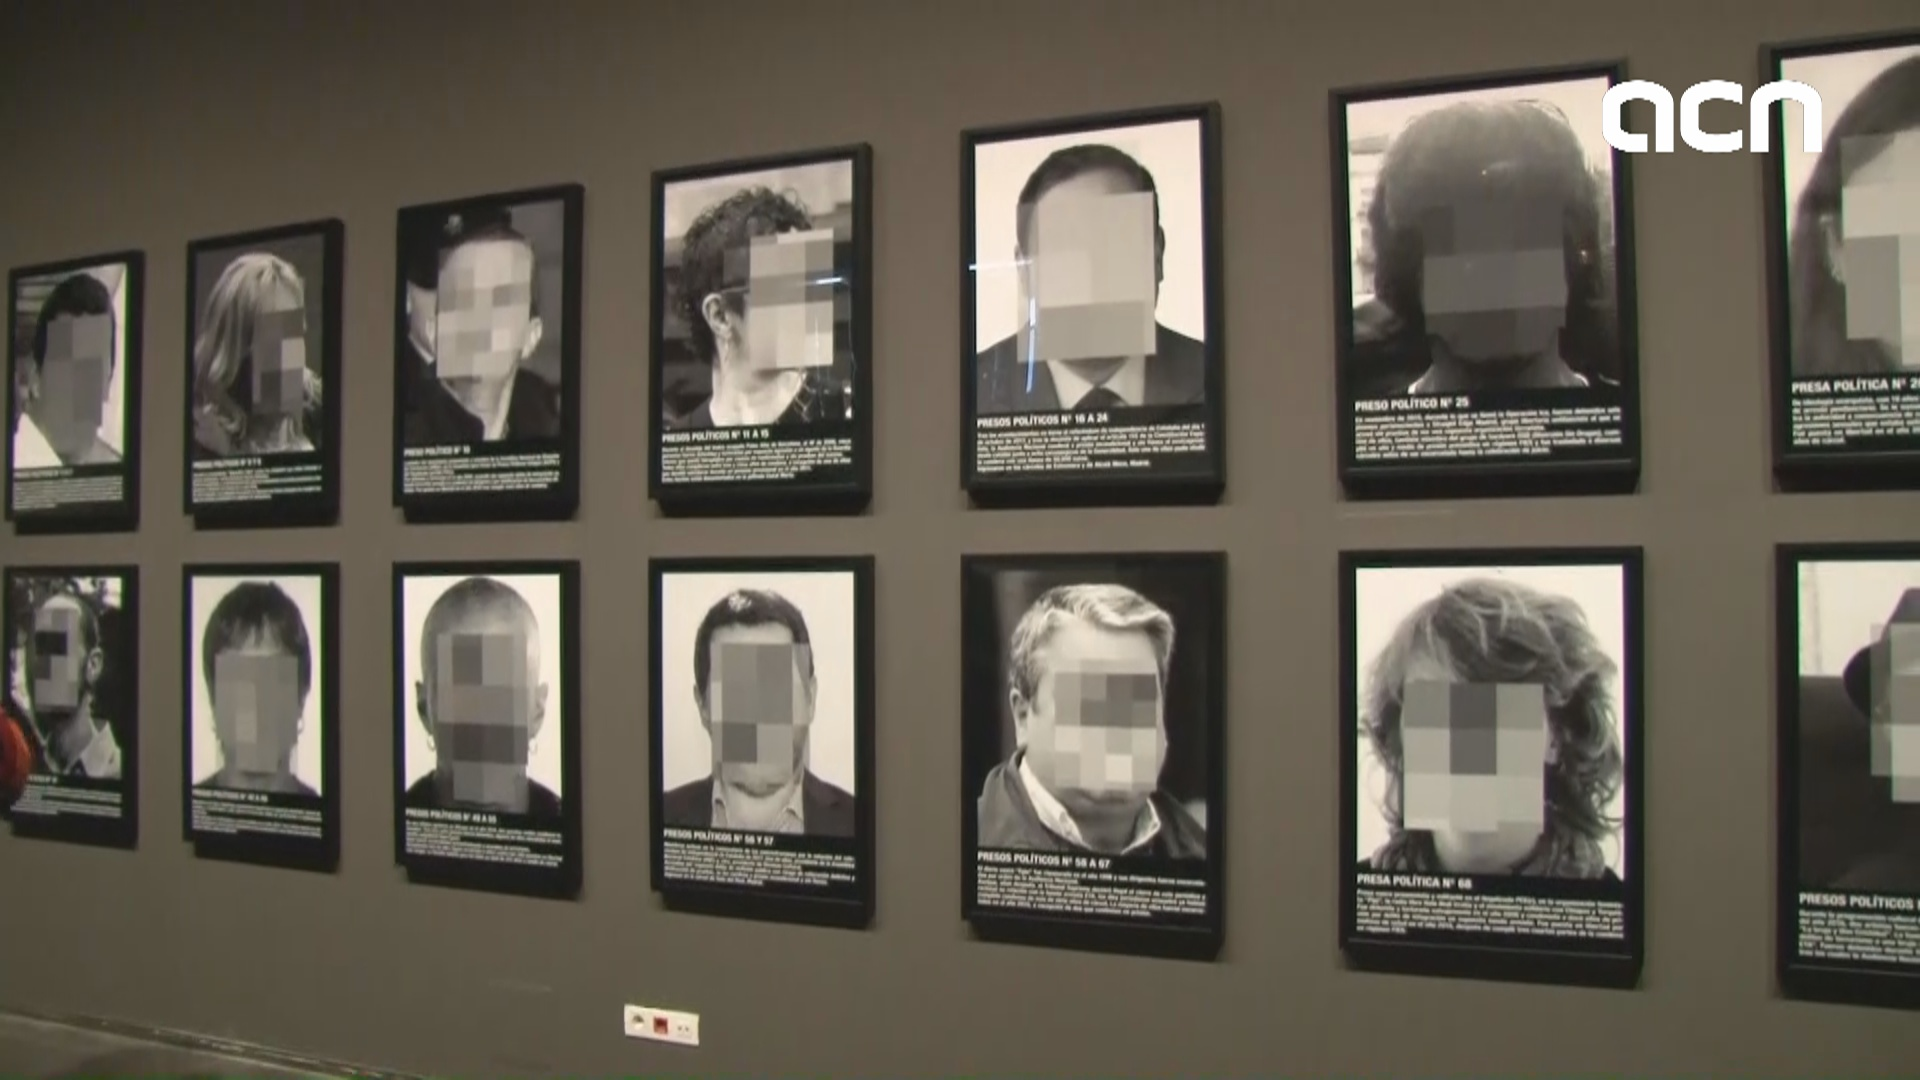 Banned artwork on display in Lleida